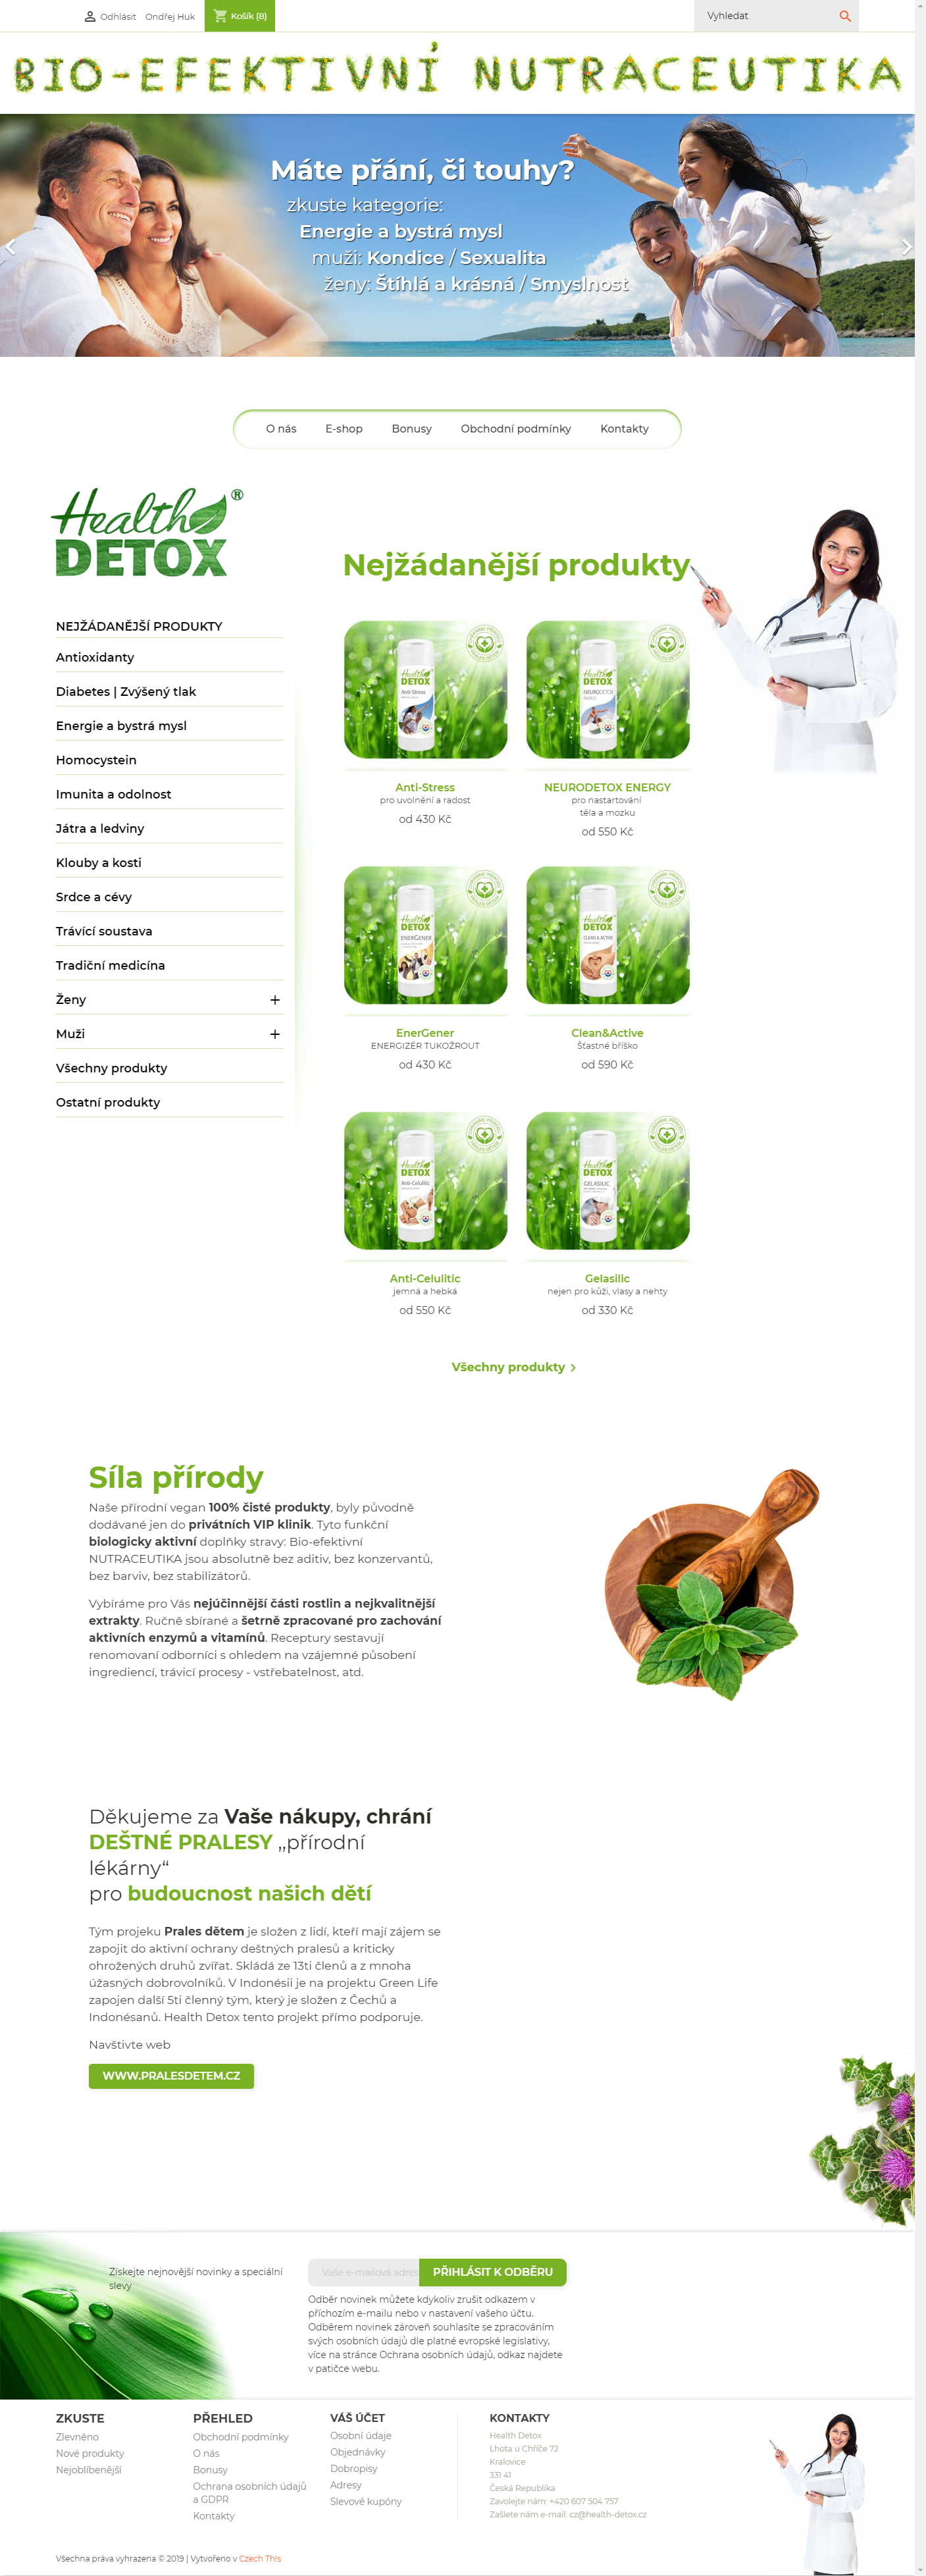 E-shop s Nutraceutikami Health Detox